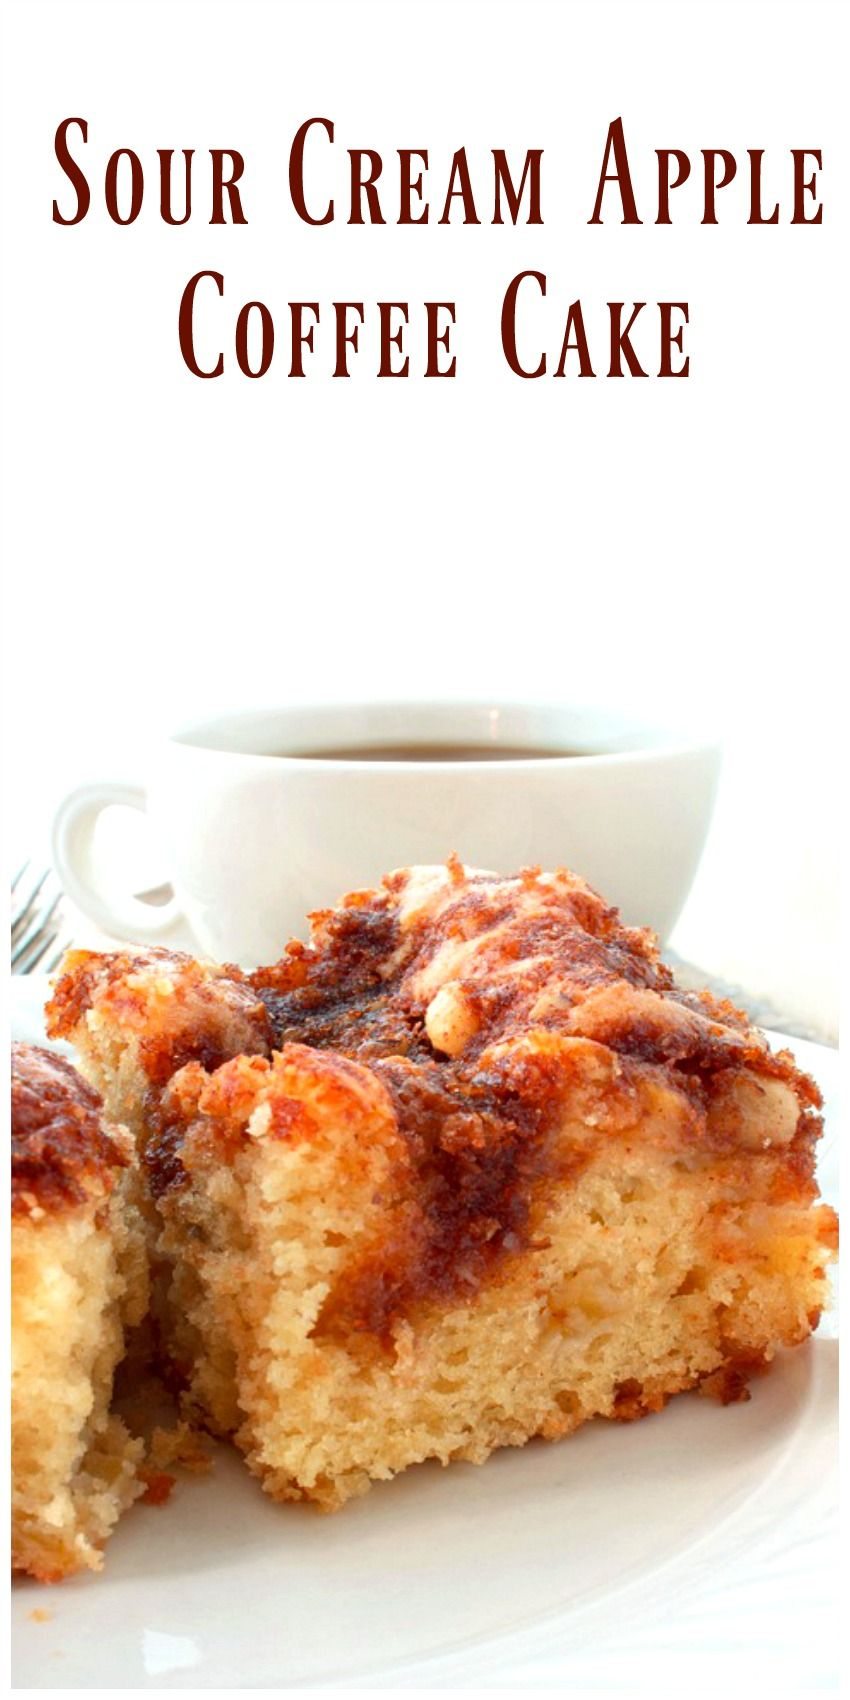 Sour Cream Apple Cake Is Moist With Just The Right Amount Of Topping Perfect With Coffee Or Tea And As Sour Cream Recipes Apple Coffee Cakes Sour Cream Cake